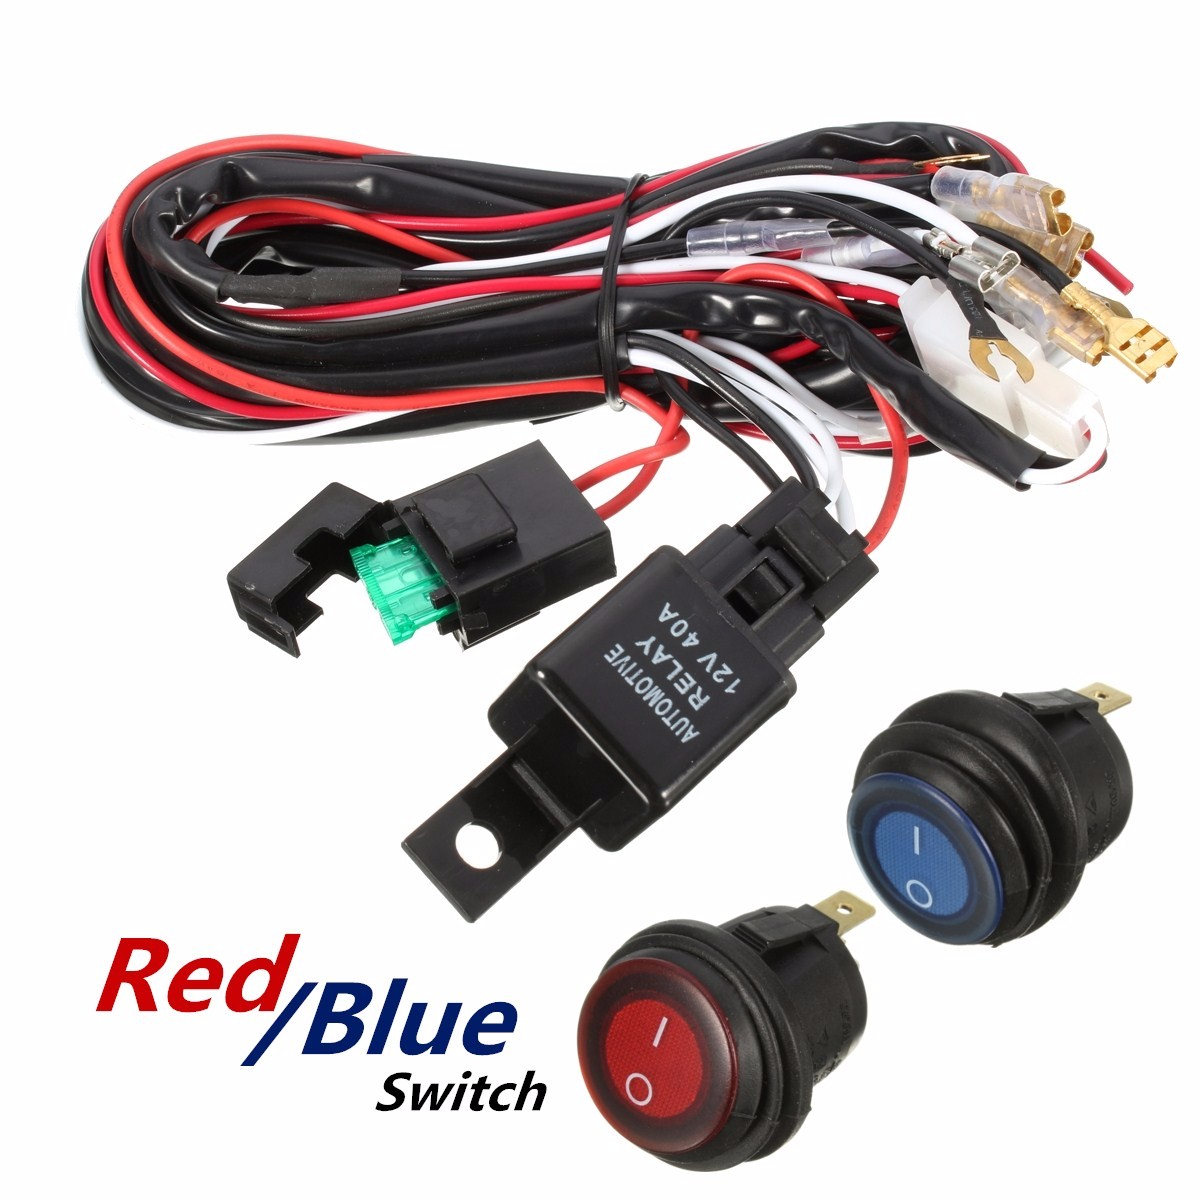 40A LED Work Light Bar Wiring Harness Kit Fuse Relay Switch For Jeep Vehicle Wiring Harness Kit on headlights kit, hose kit, exhaust kit, bumper kit, timing belt kit, transmission kit, air bag kit, fan kit, fuel line kit, car wiring kit, strat wiring kit, wiring light kit, wiring tools kit, coil kit, wiring connector kit, oil cooler kit, wiring thermostat, timing chain kit,